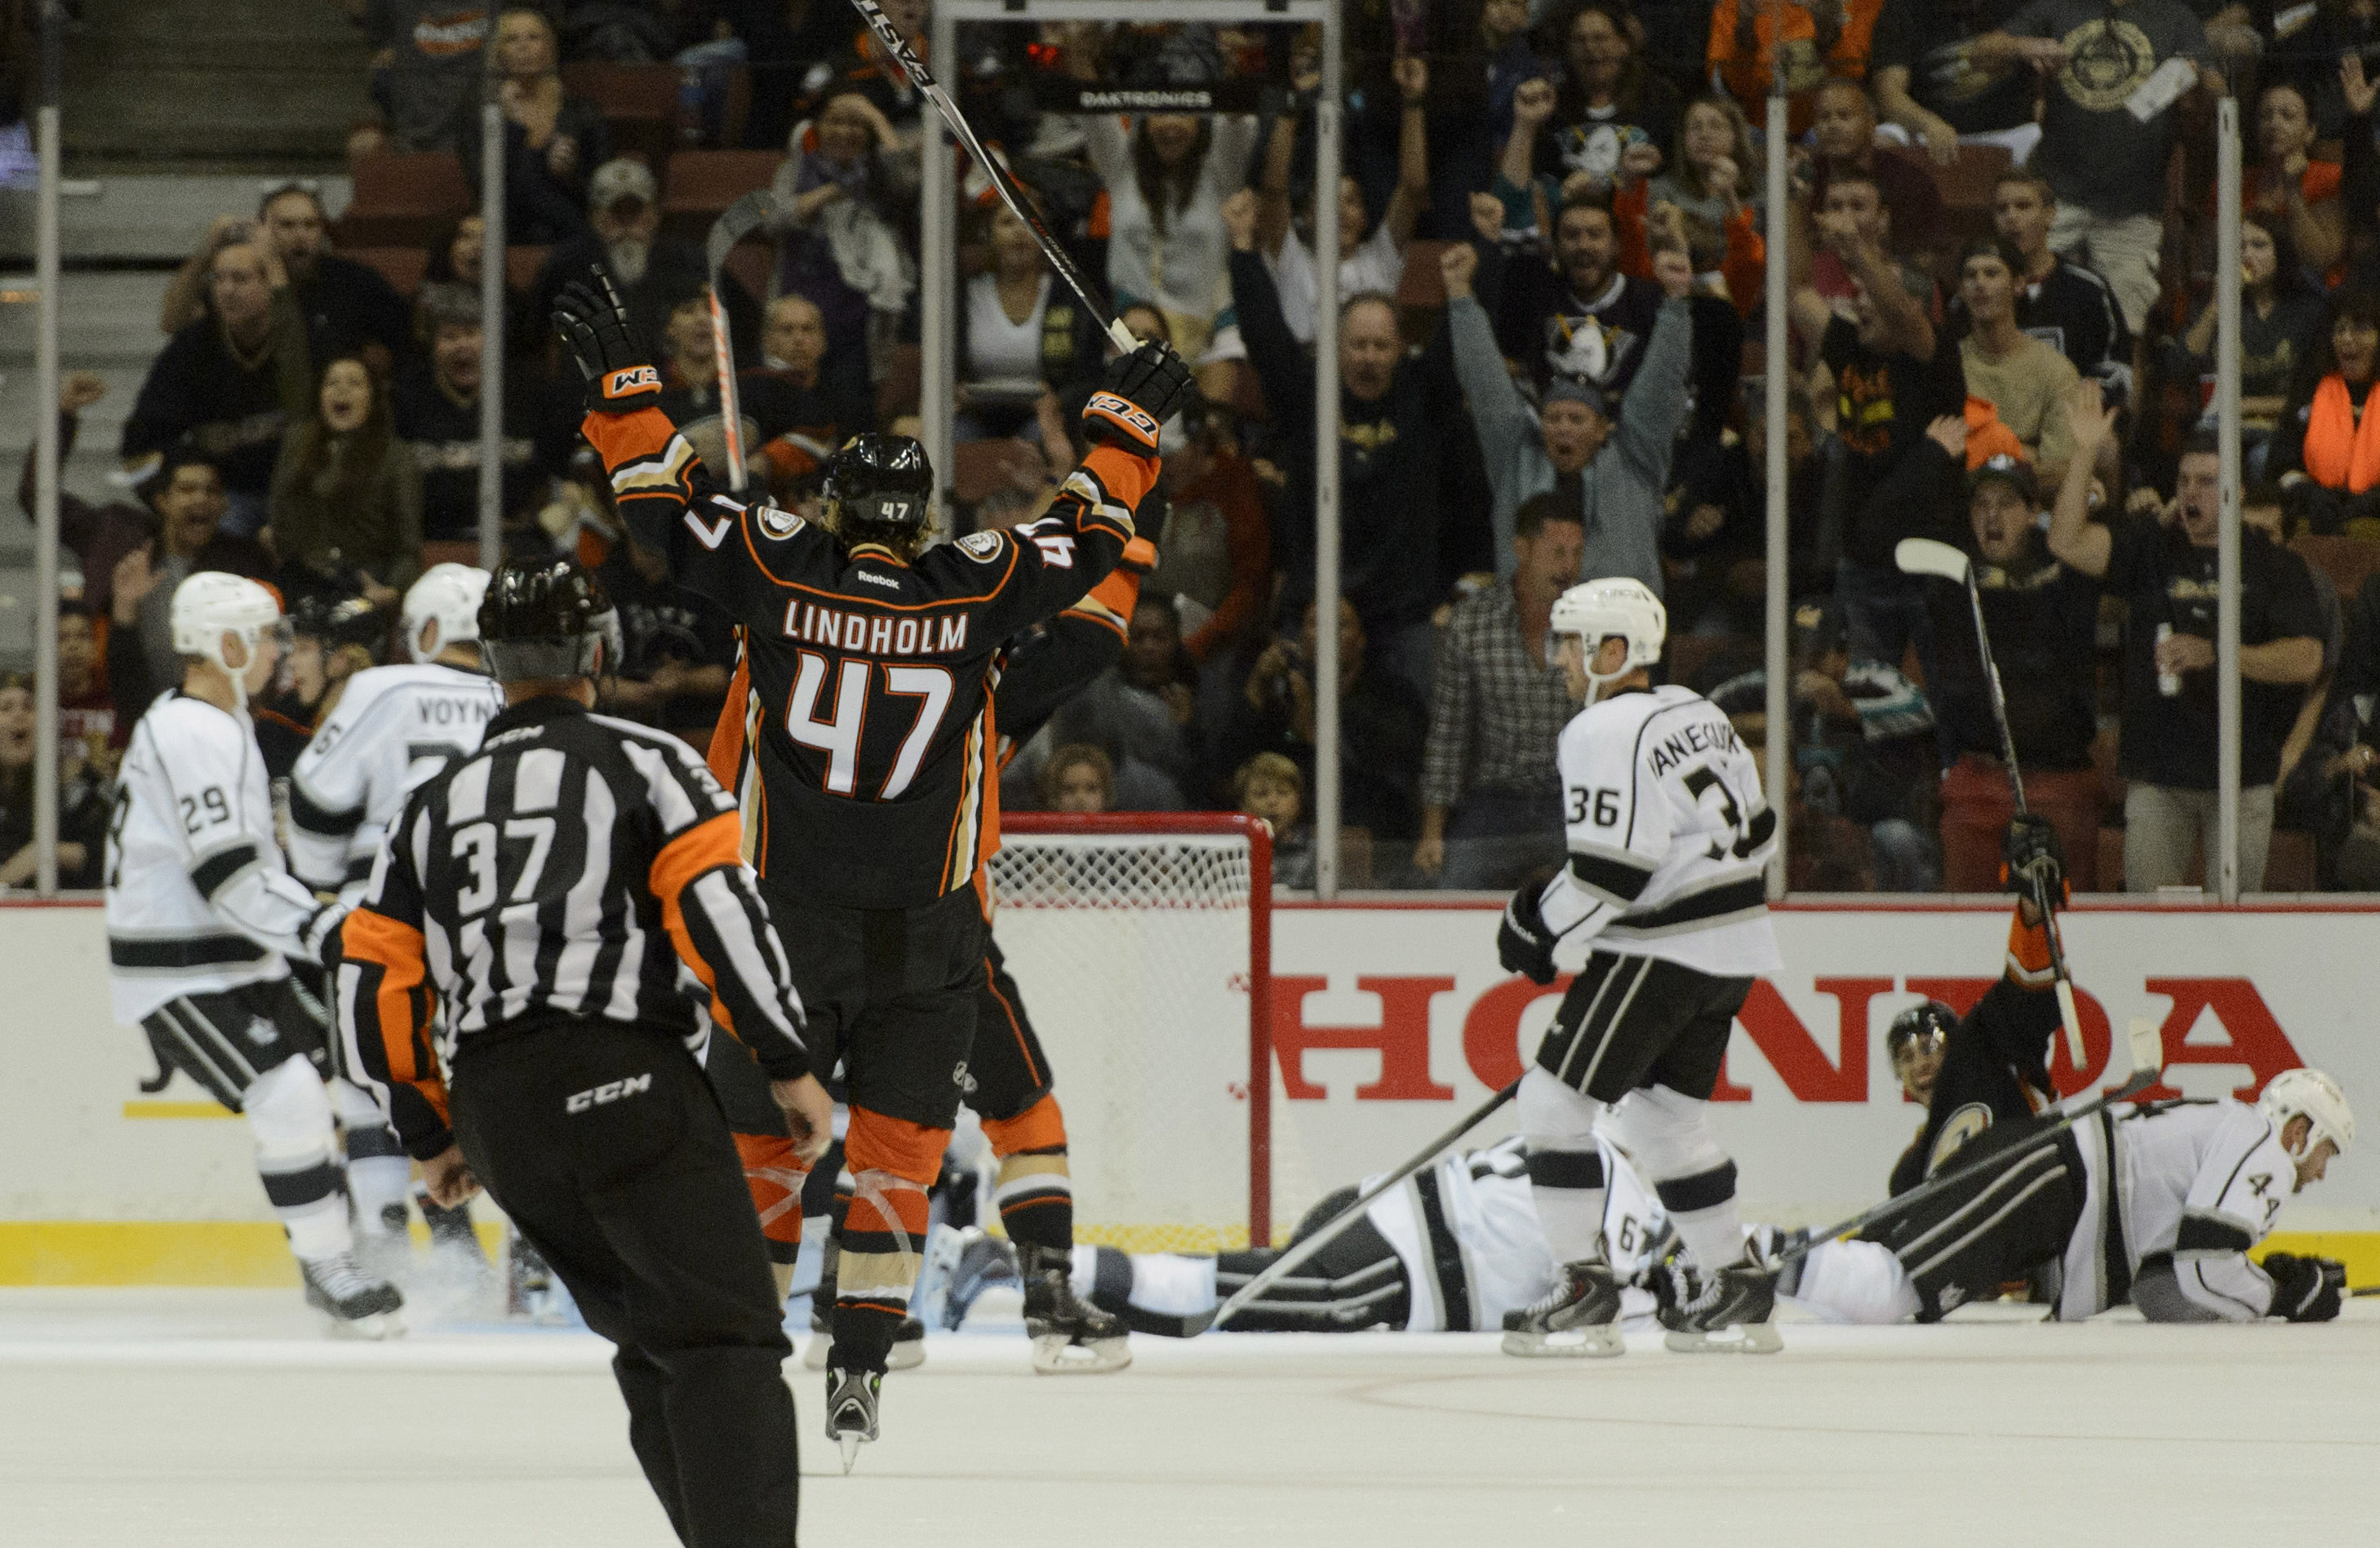 Hampus Lindholm celebrates a goal during the preseason meeting last year between the Ducks and Kings.